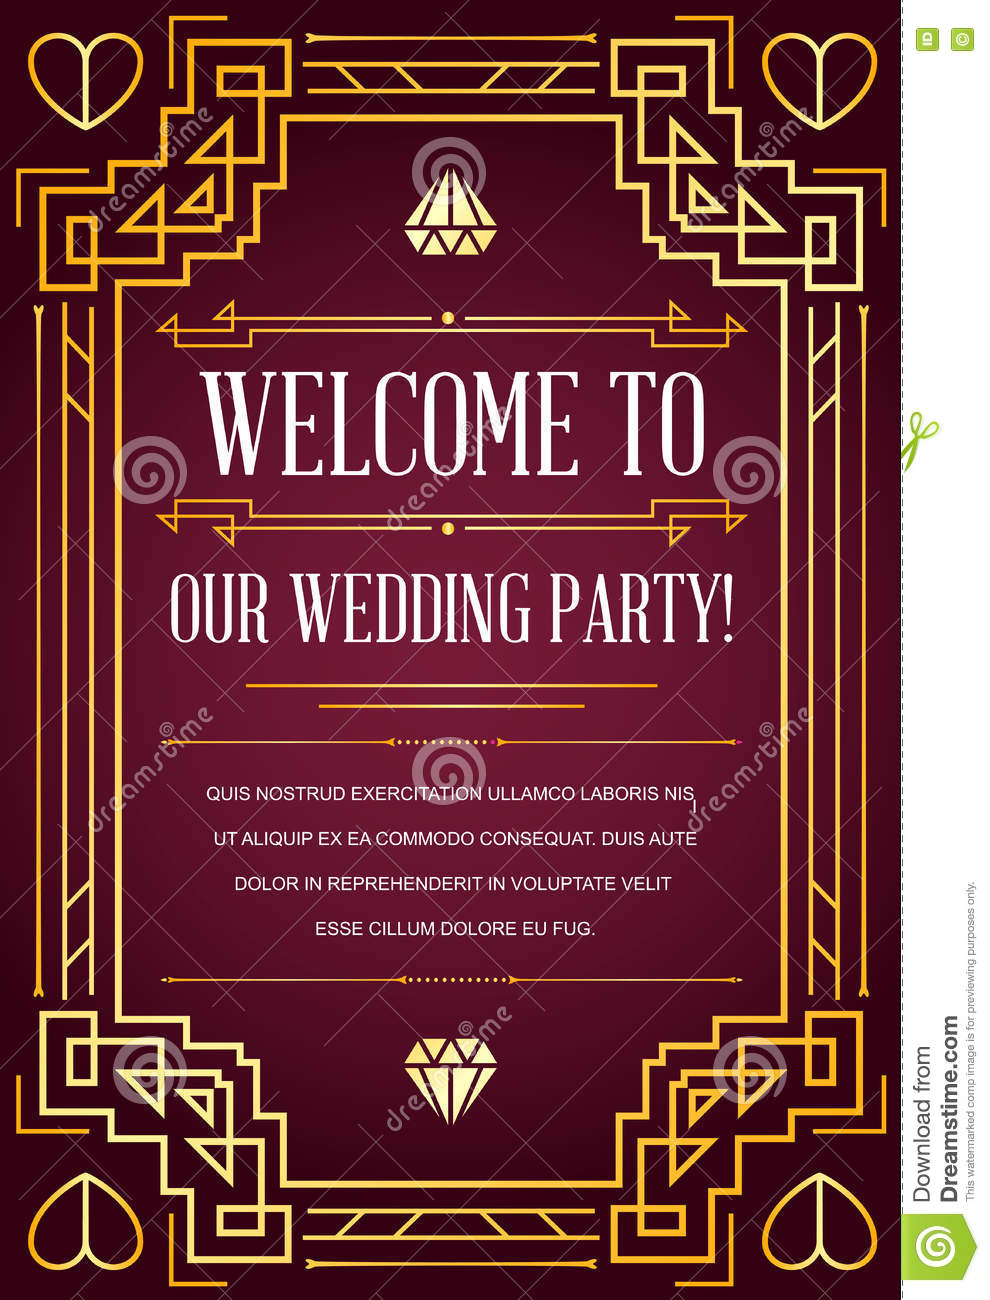 Great Quality Style Invitation In Art Deco Or Nouveau Epoch Stock ...